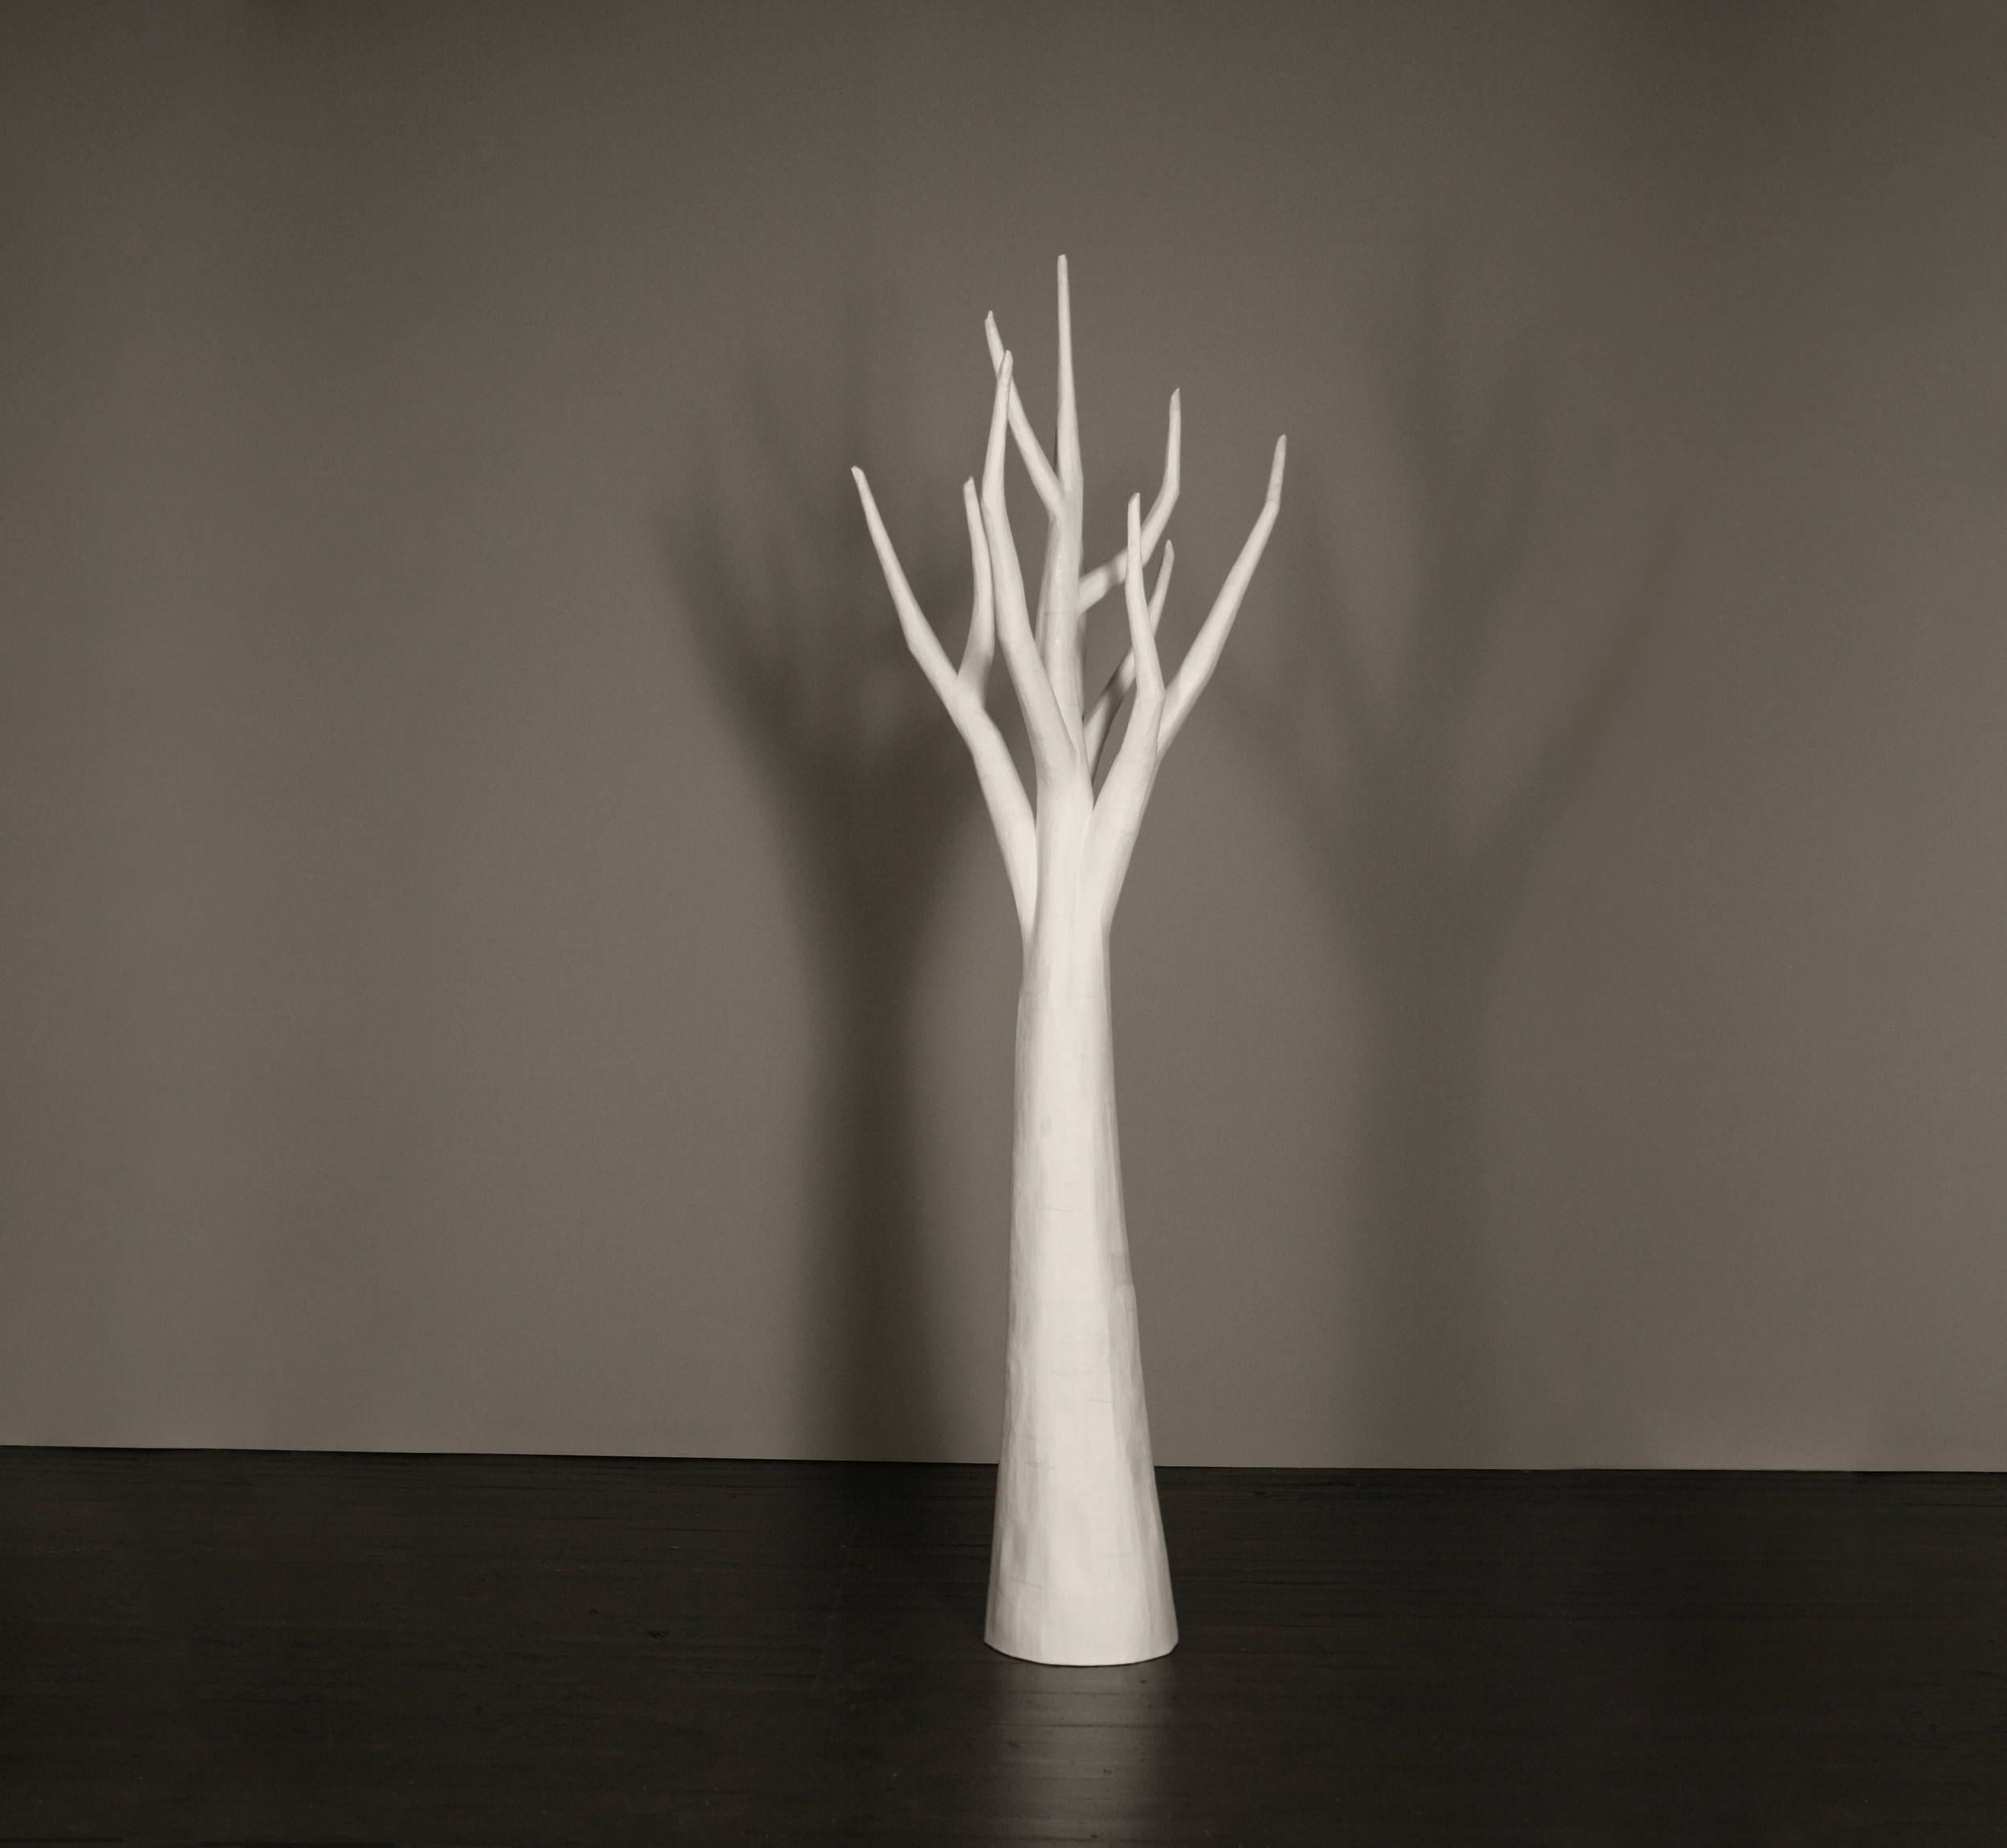 Tall White Papier-Mache Tree,   Joan Backes  9' x 4',  papier-mâché